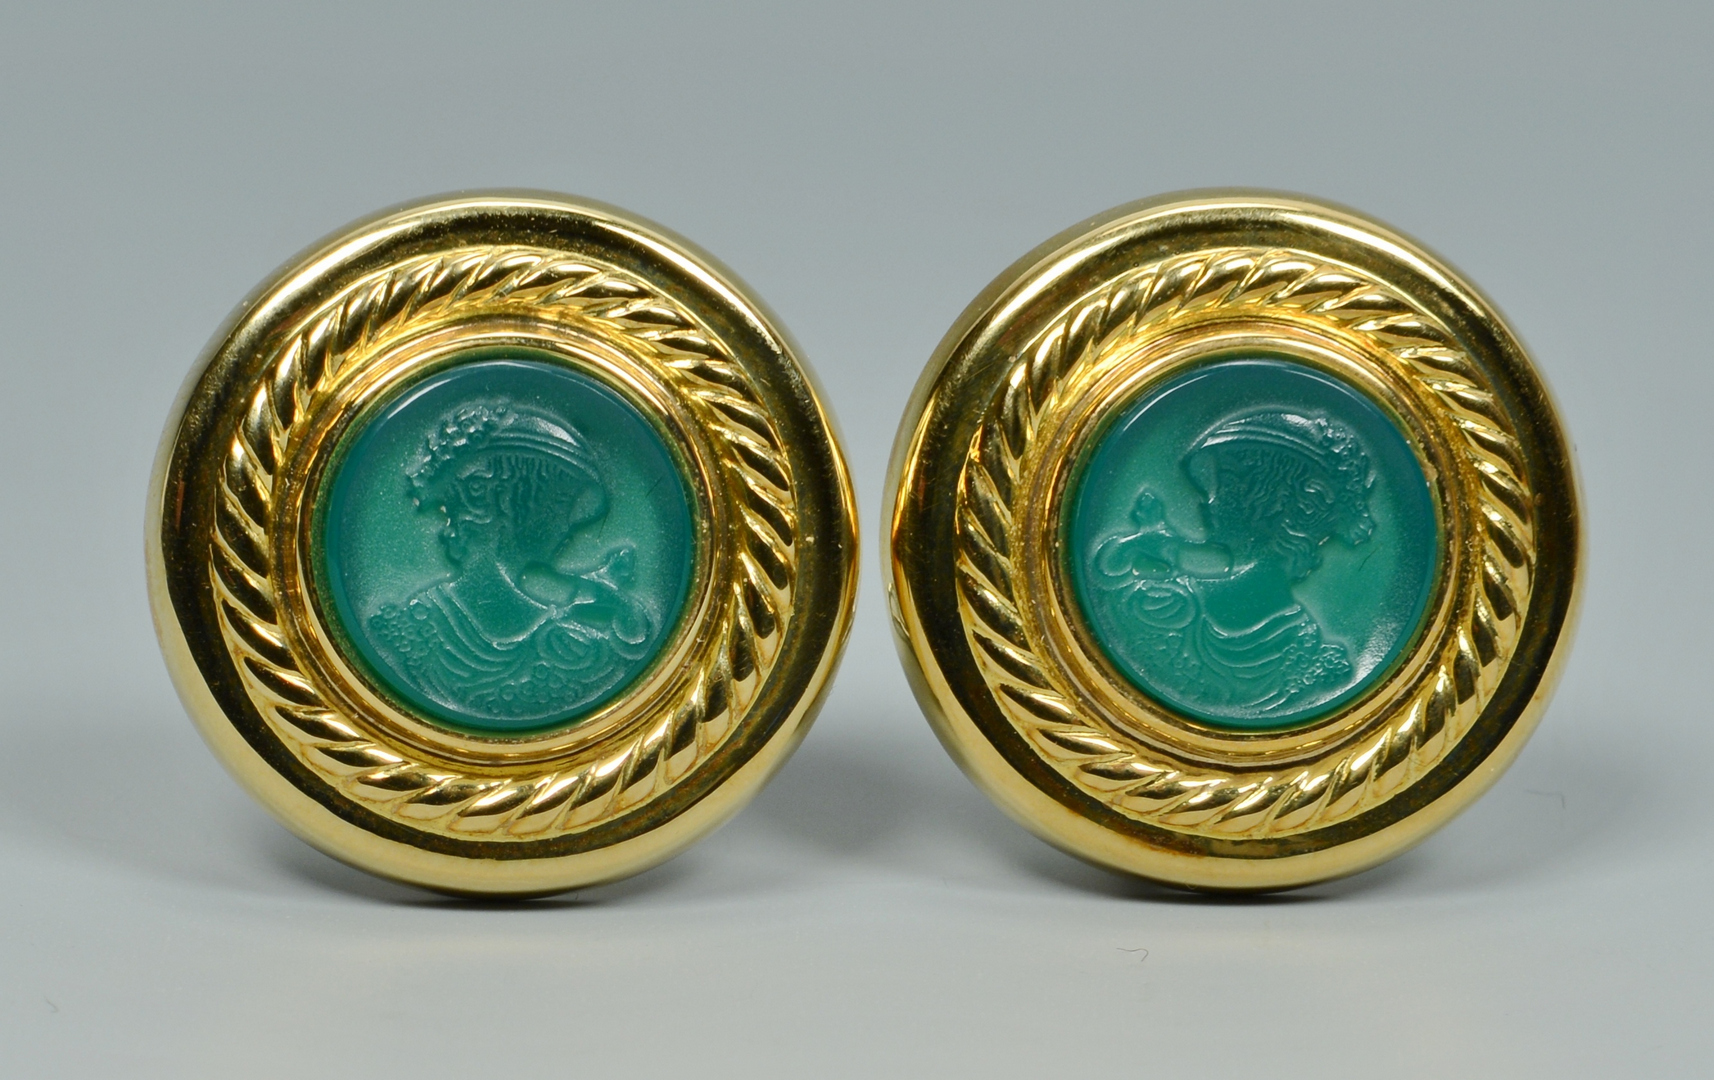 Lot 3088230: 18k Earrings w/ Green Onyx Intaglios